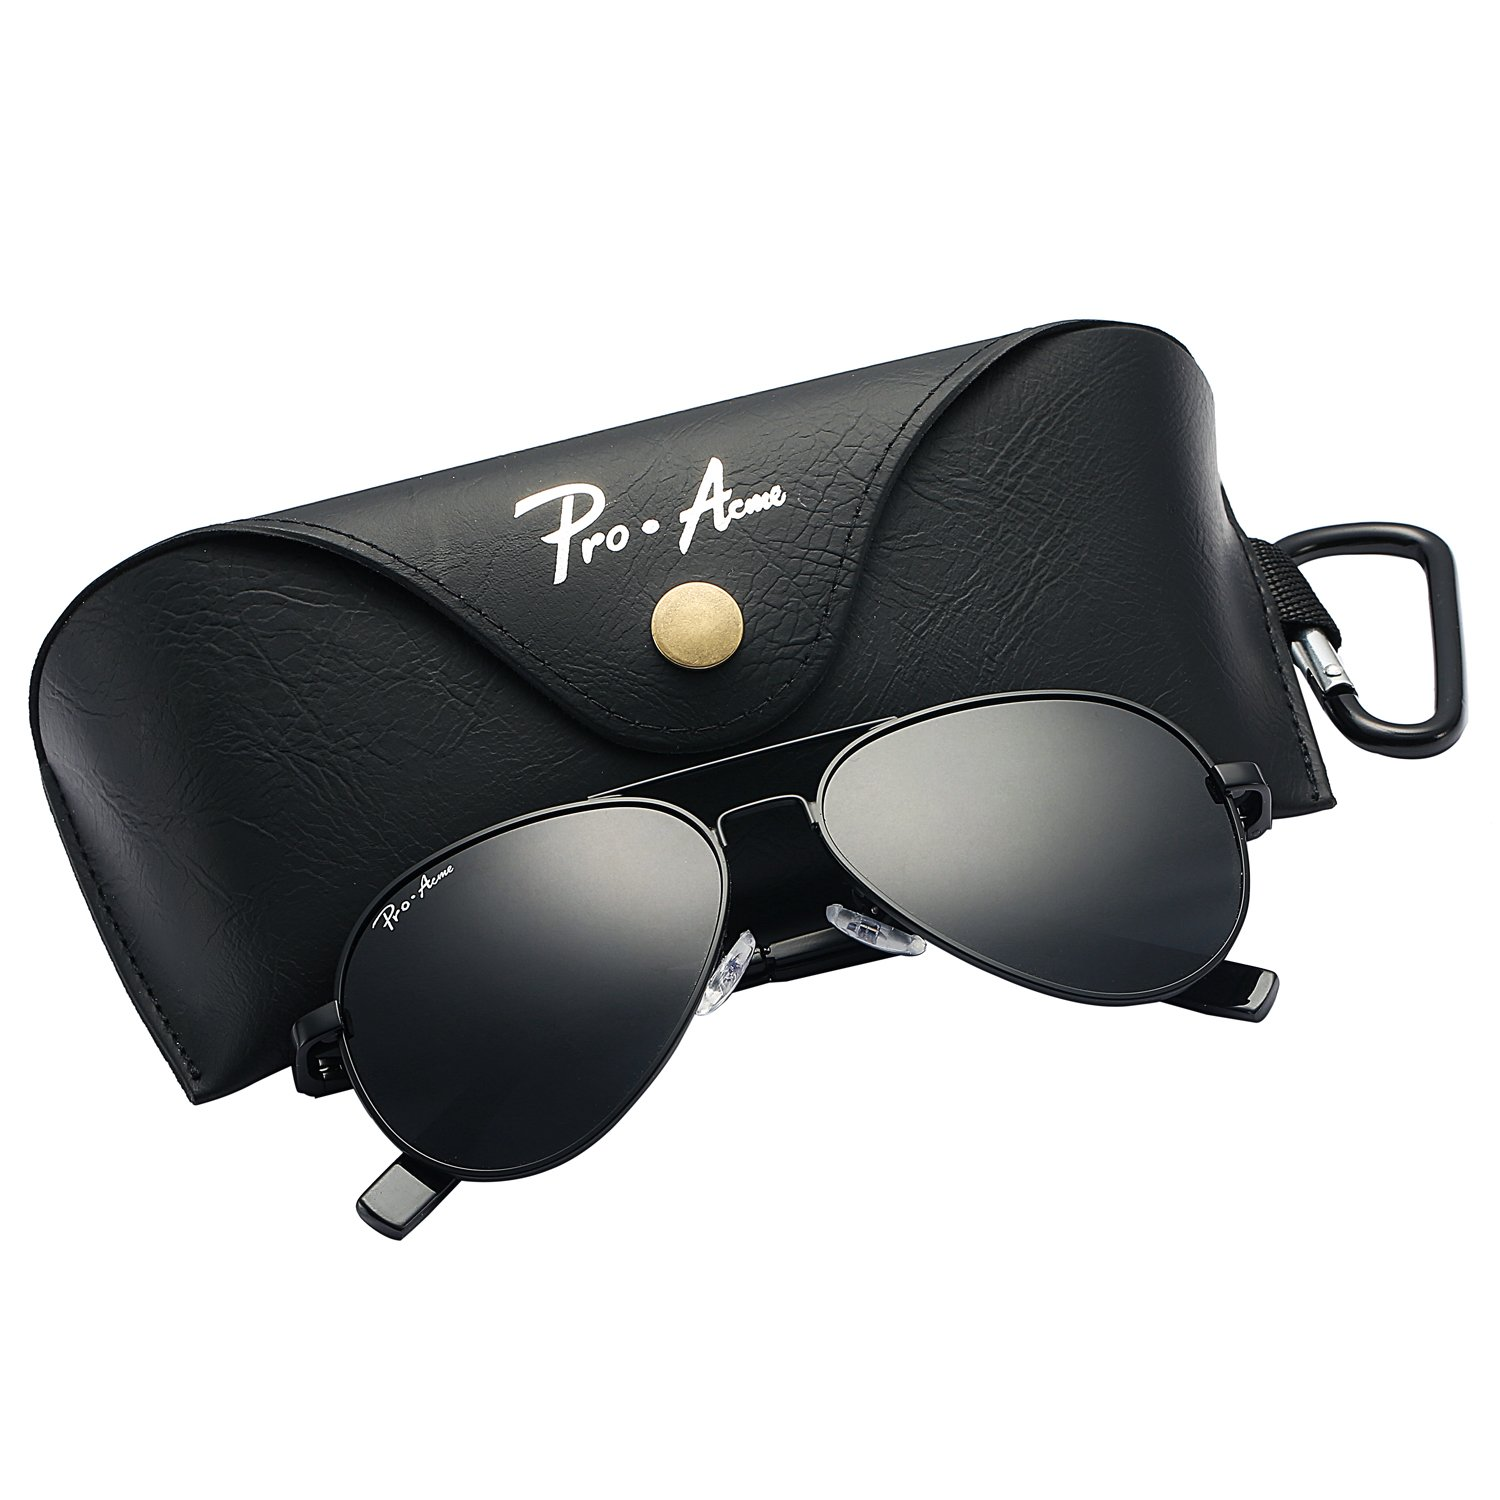 Pro Acme Small Polarized Aviator Sunglasses for Kids and Youth Age 5-18 PA3022C